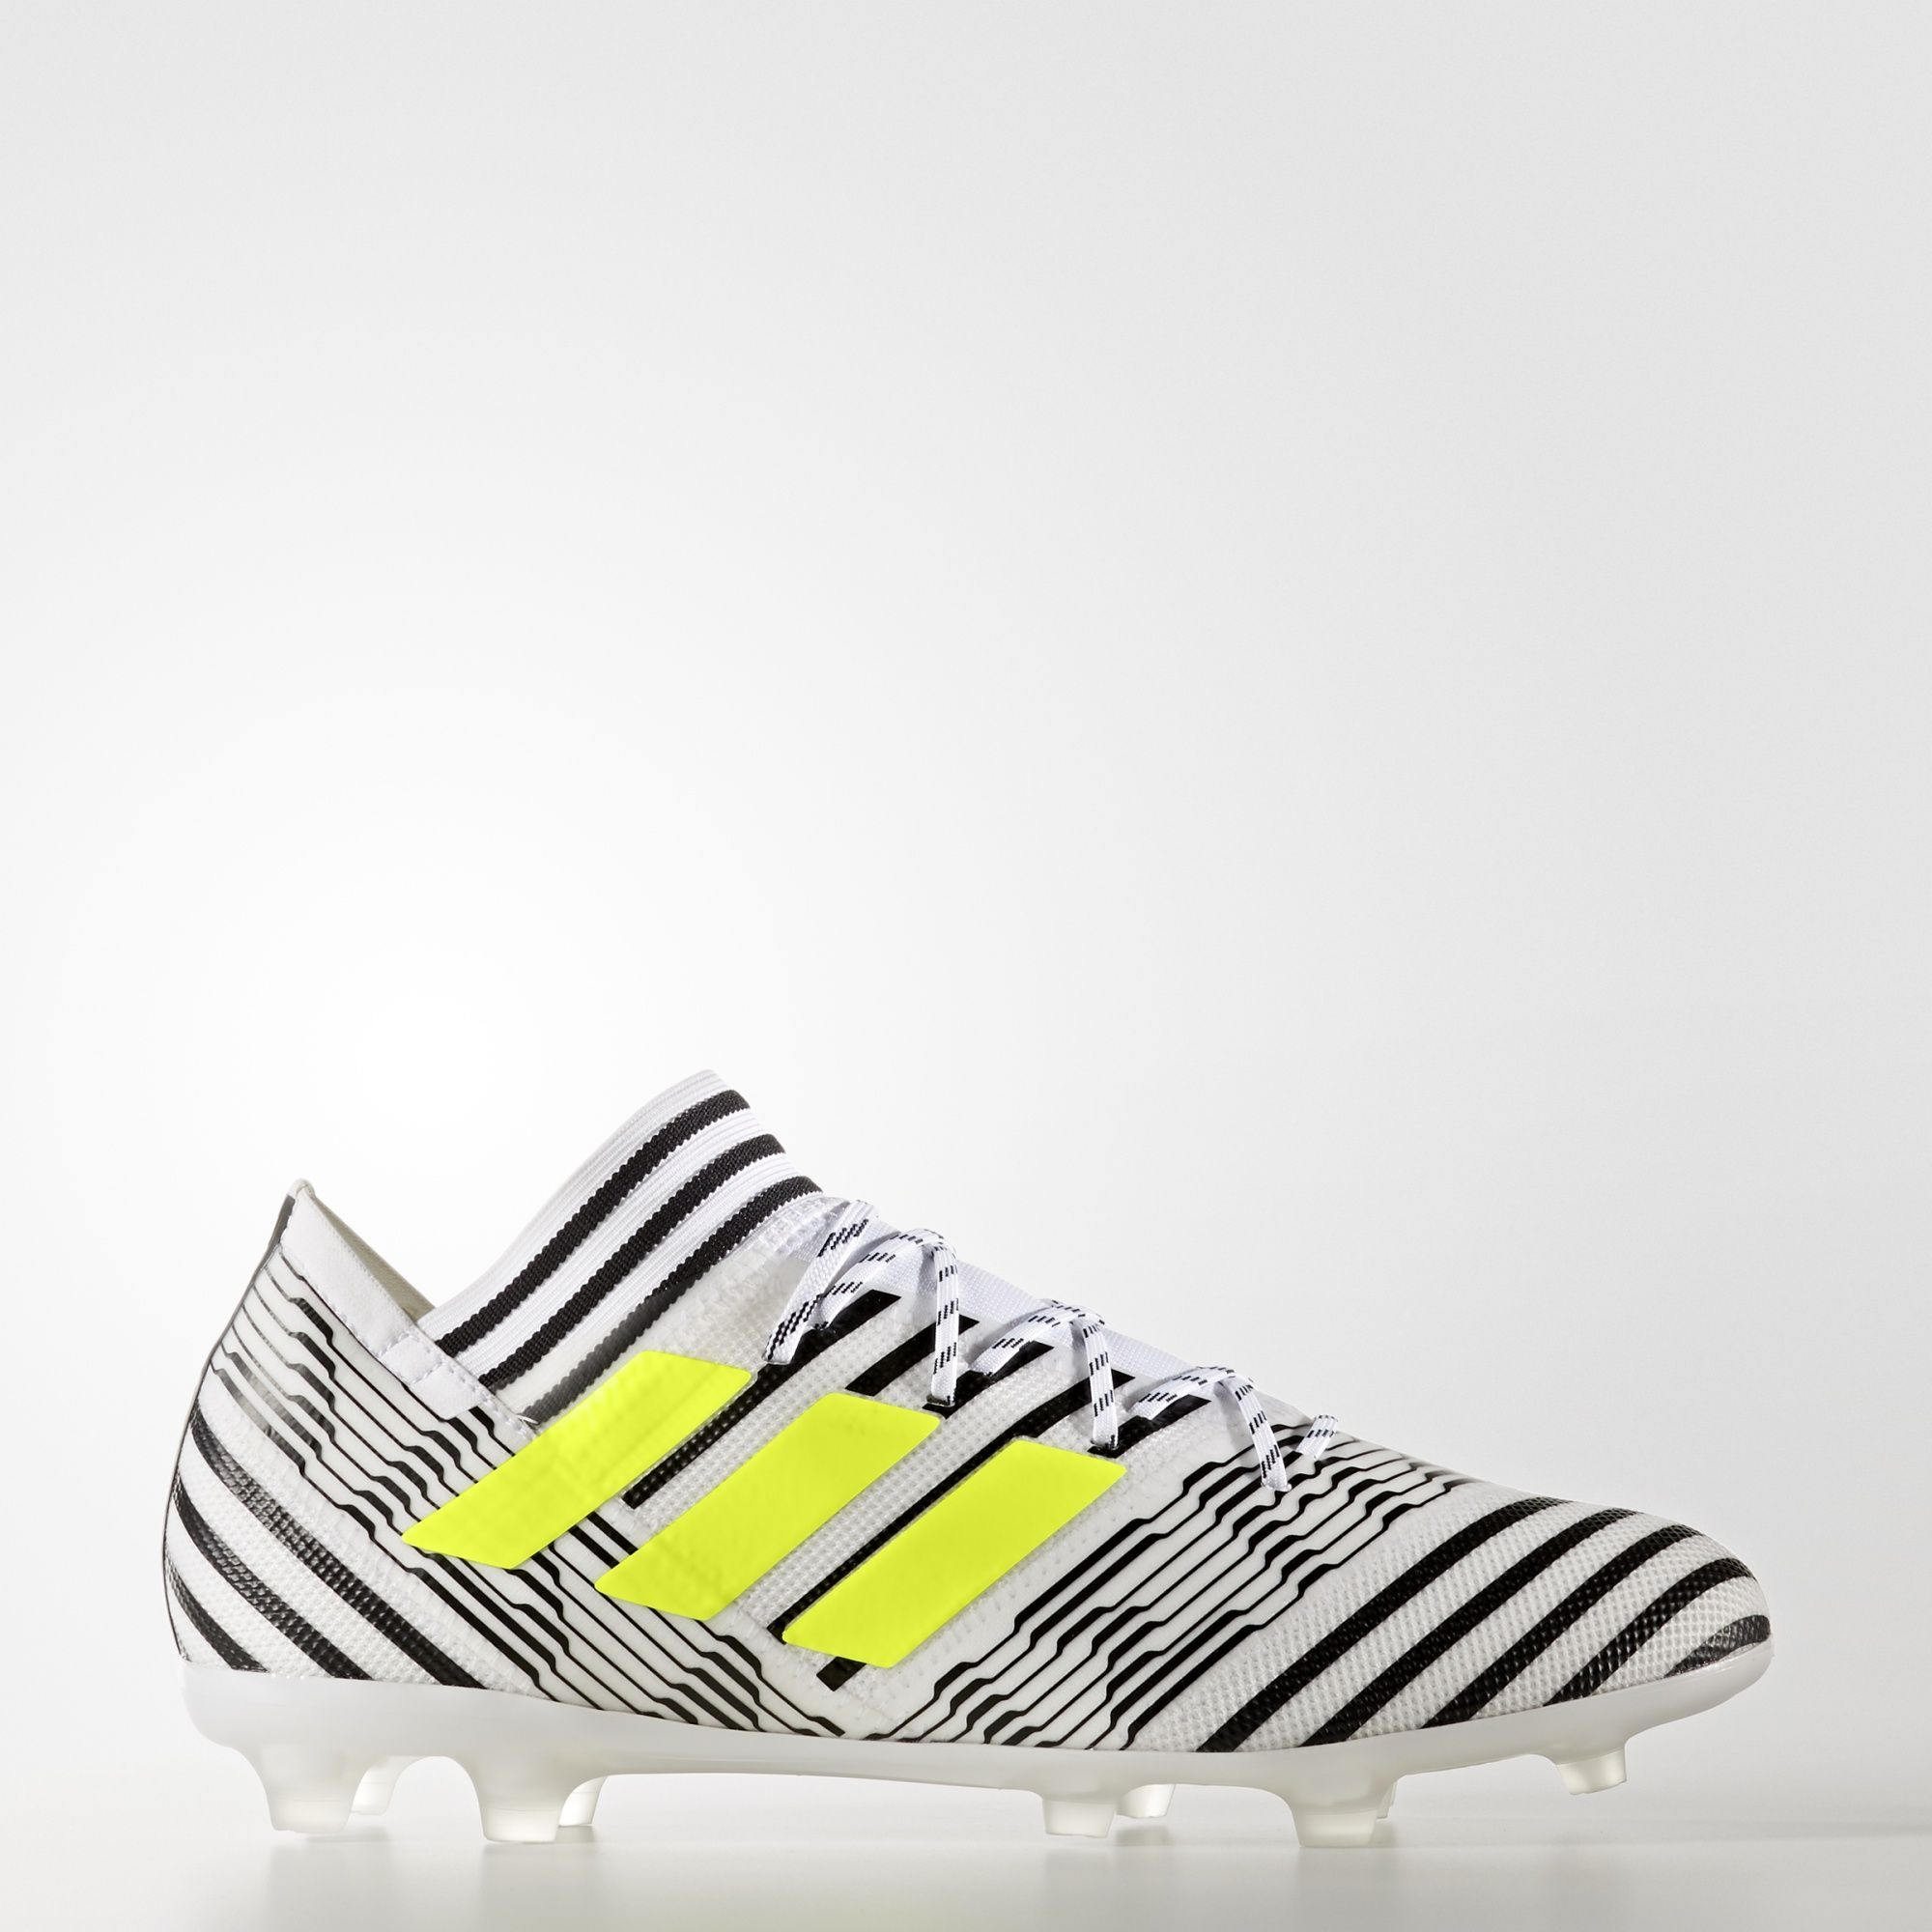 4164060fde adidas - Nemeziz 17.2 Firm Ground Cleats | Sports stuff | Adidas ...